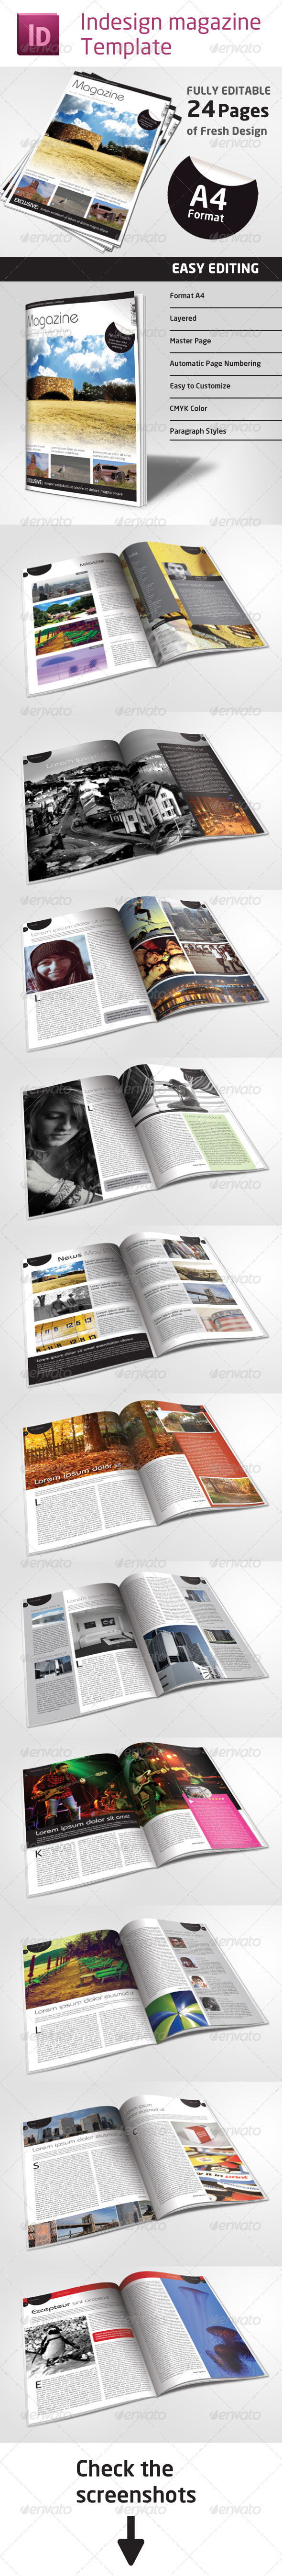 24 Pages Magazine Template in A4 Format - Magazines Print Templates